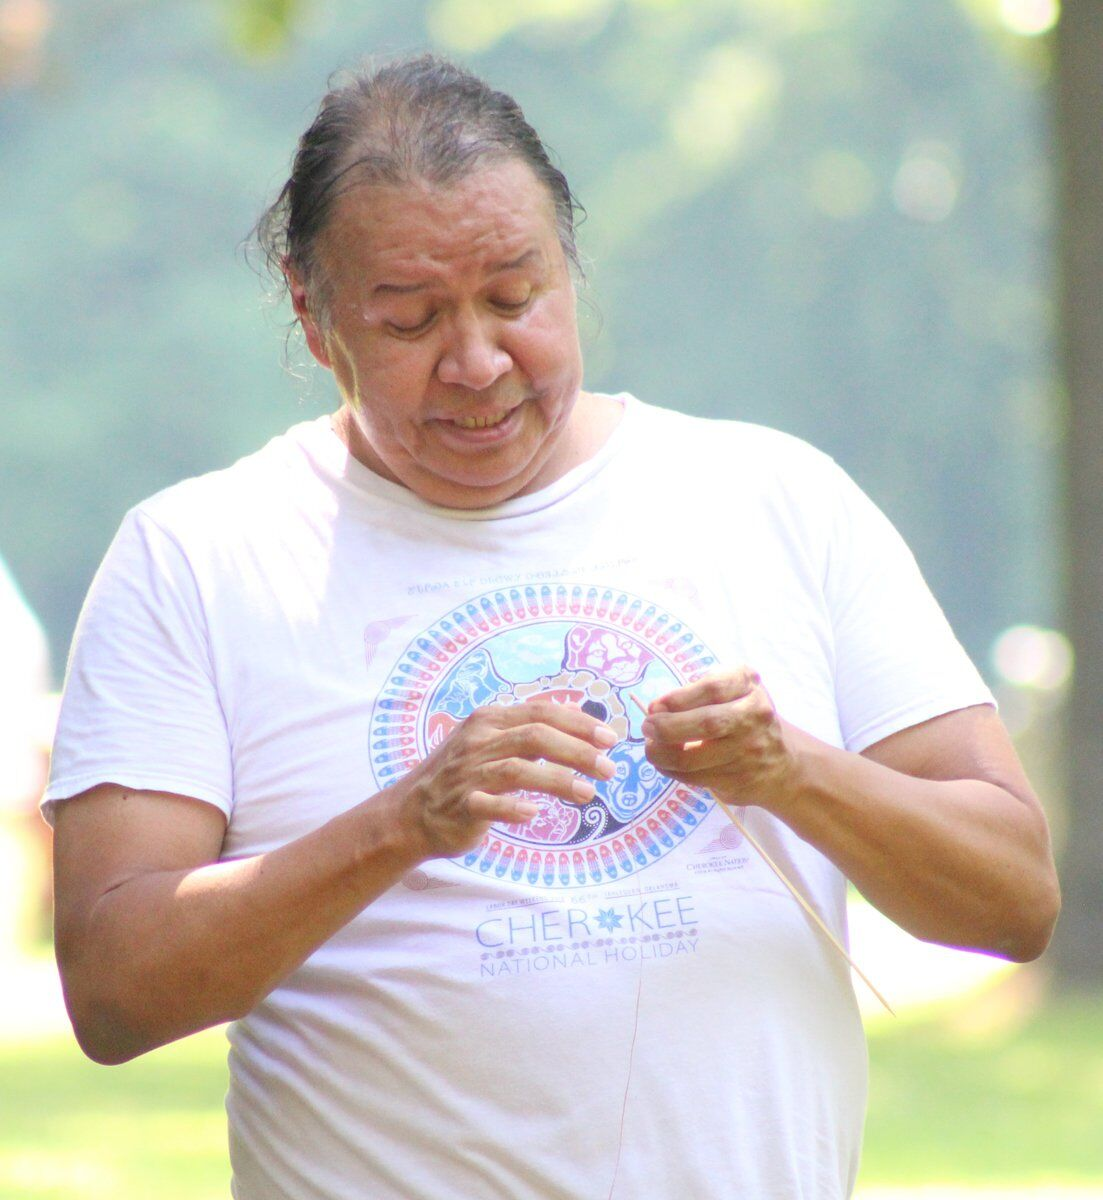 TRIBAL TRADITIONS: Three factions of Cherokees meeting for Tri-Council meeting